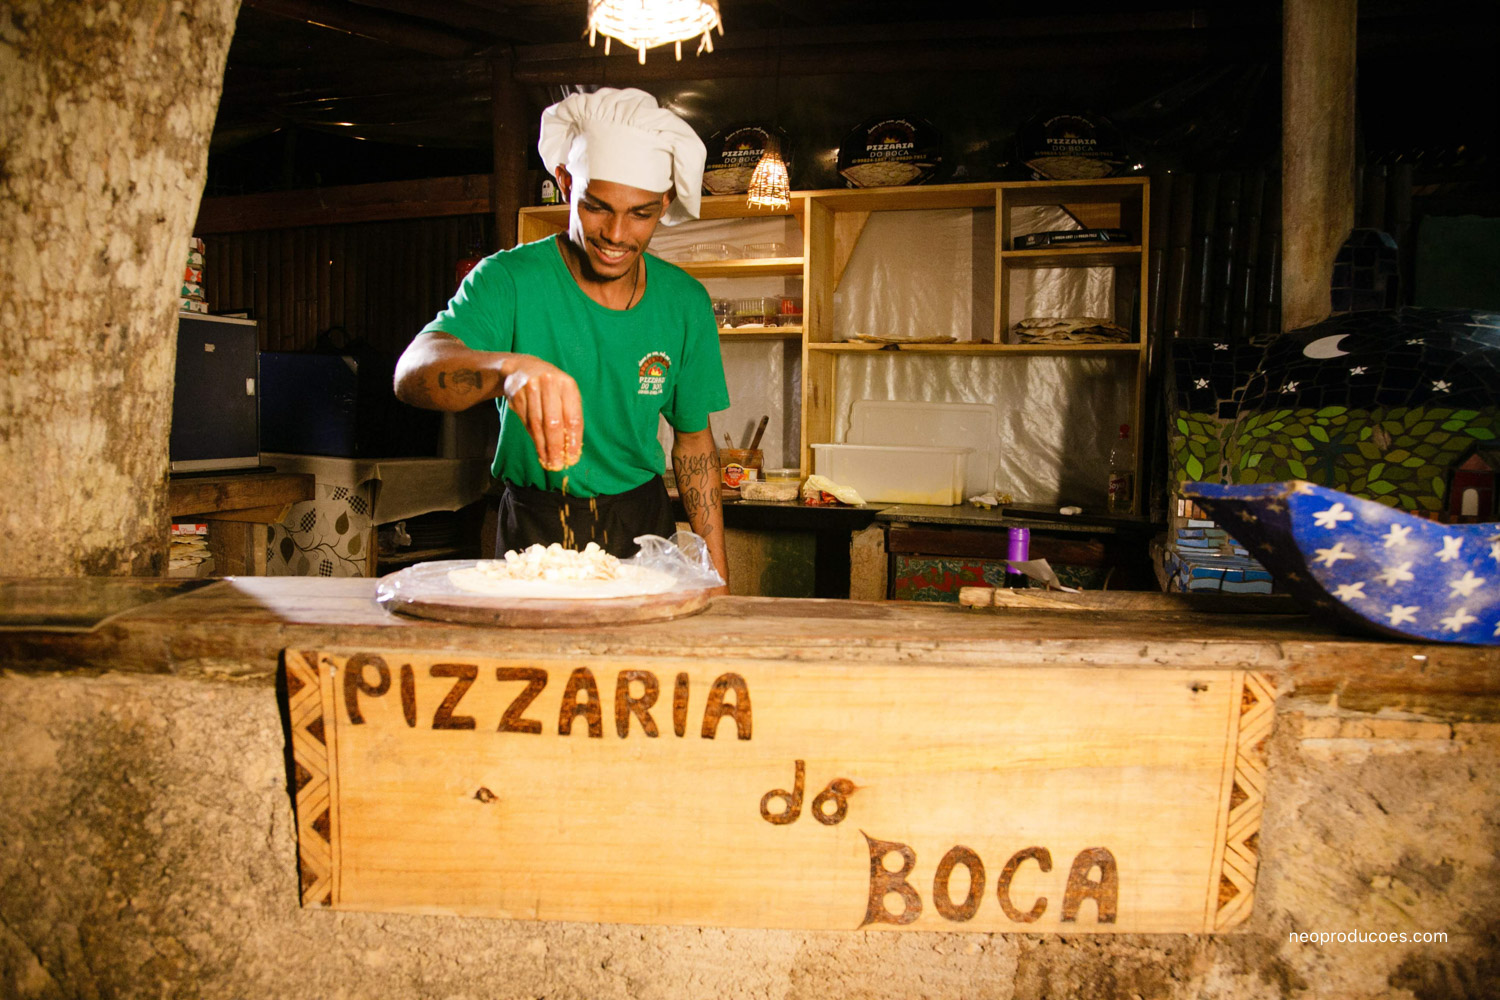 Pizzaria do Boca - Caraíva - BA